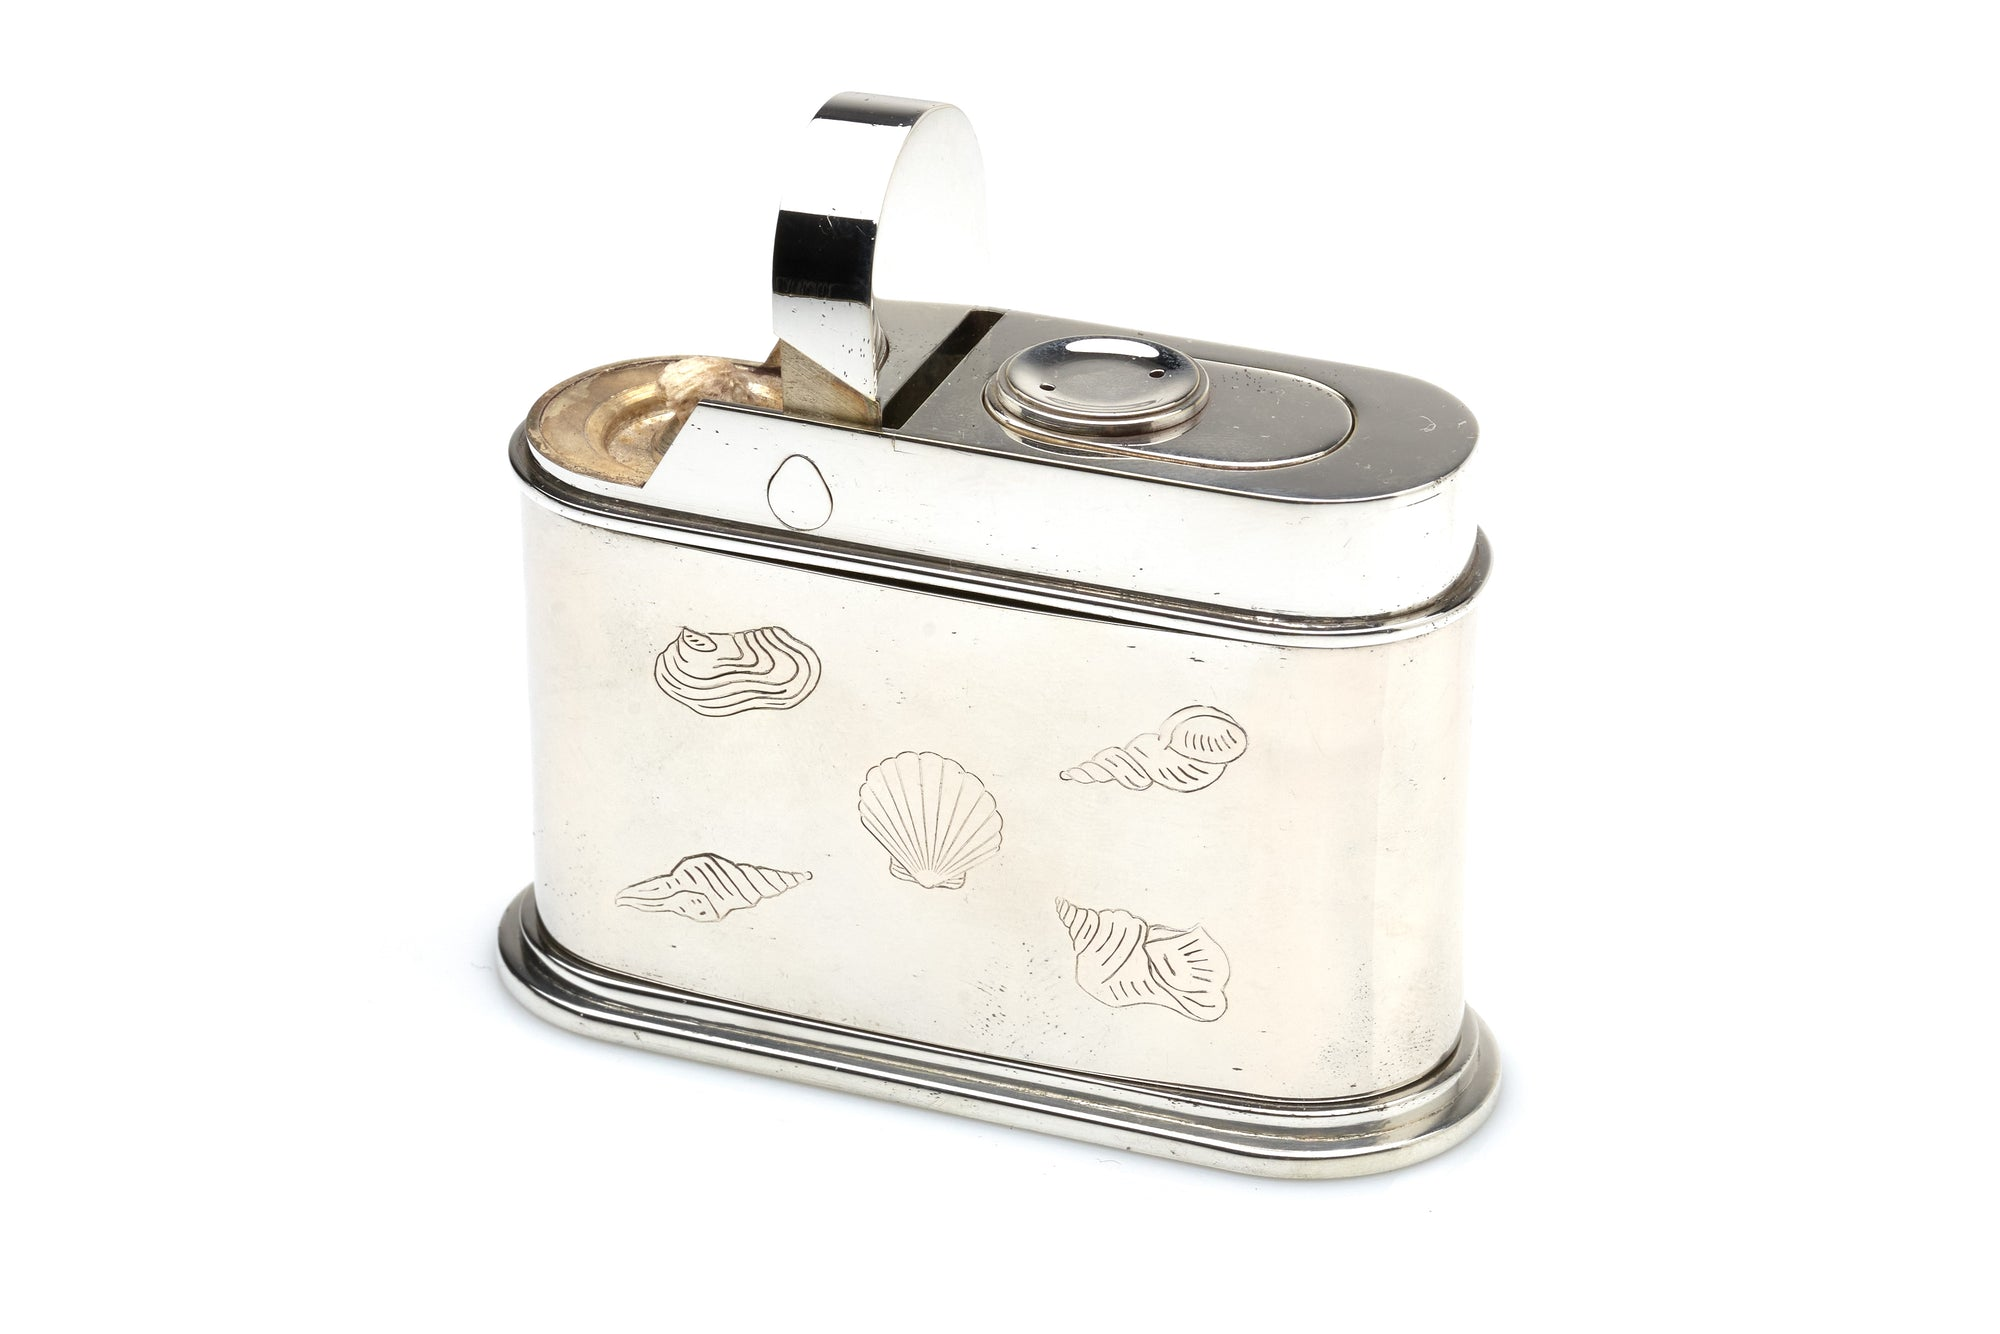 Cartier Sterling Silver Lighter, 1950s